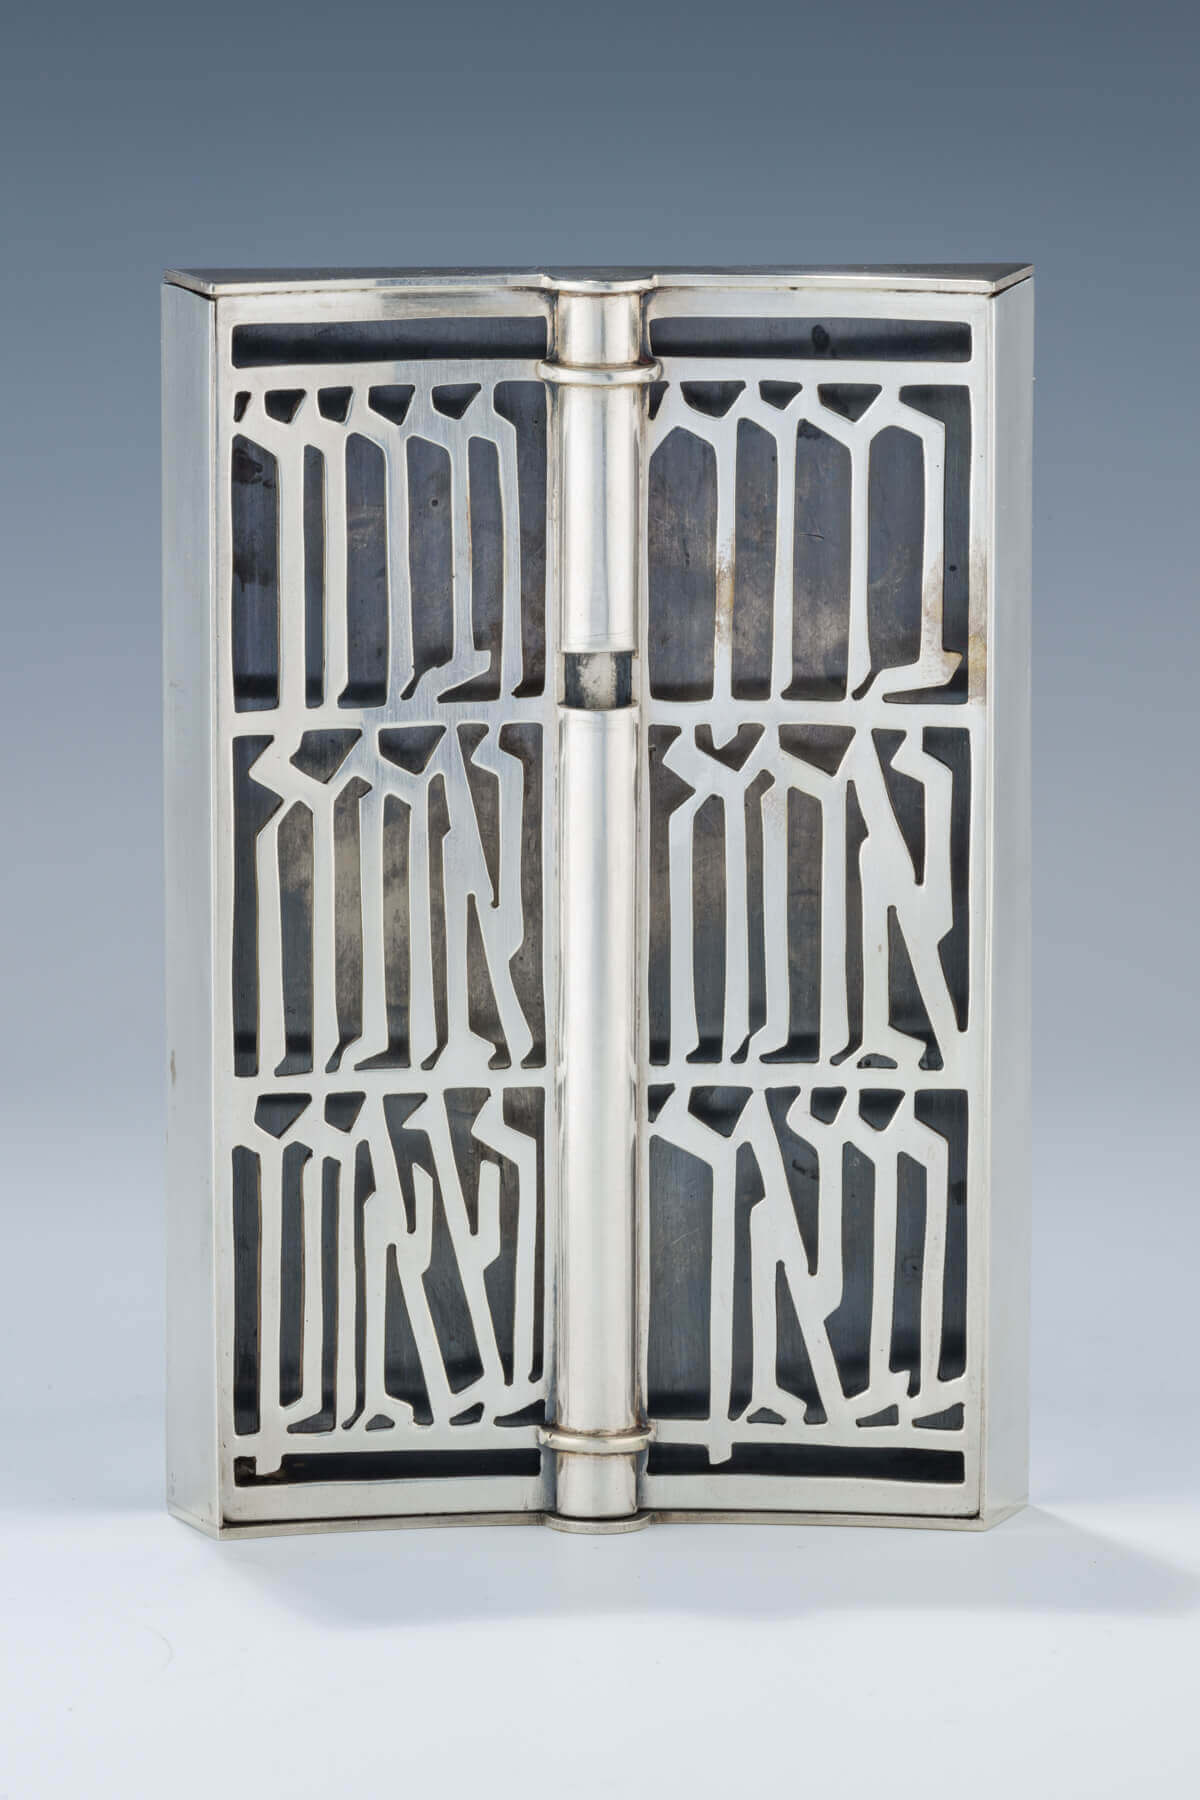 179. A LARGE STERLING SILVER MEZUZAH BY LUDWIG WOLPERT